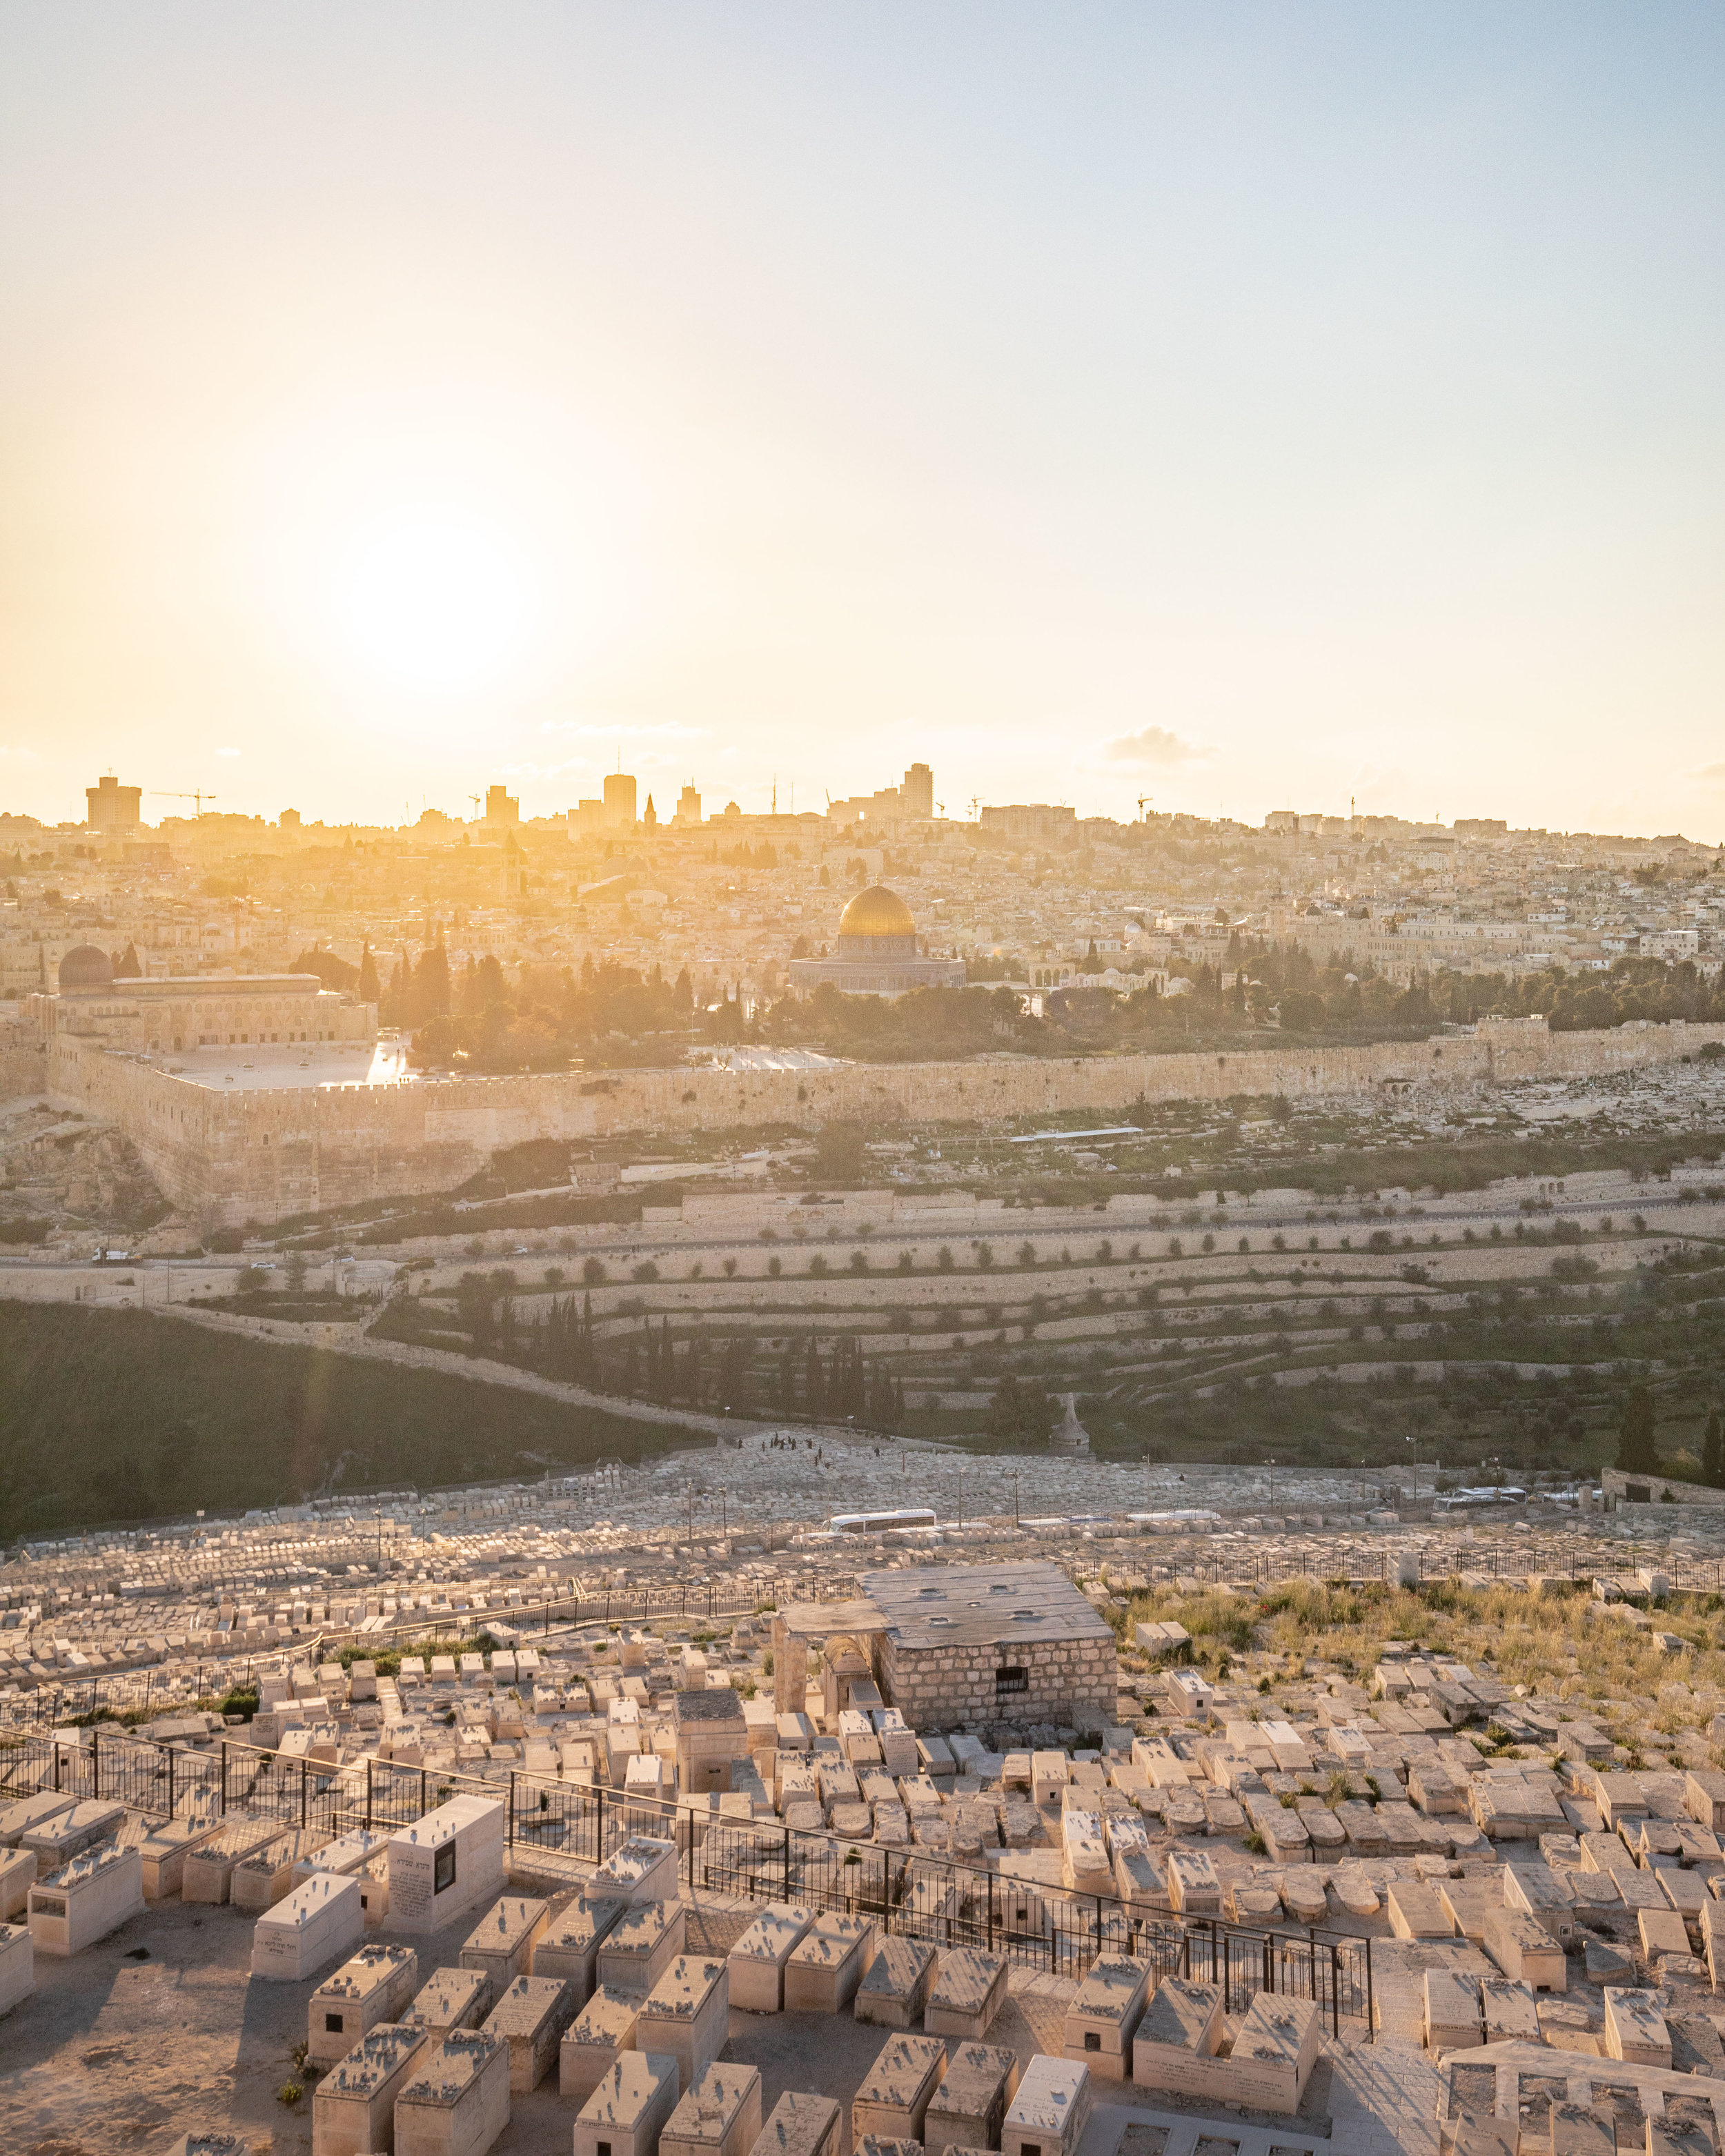 The views from the Mount of Olives